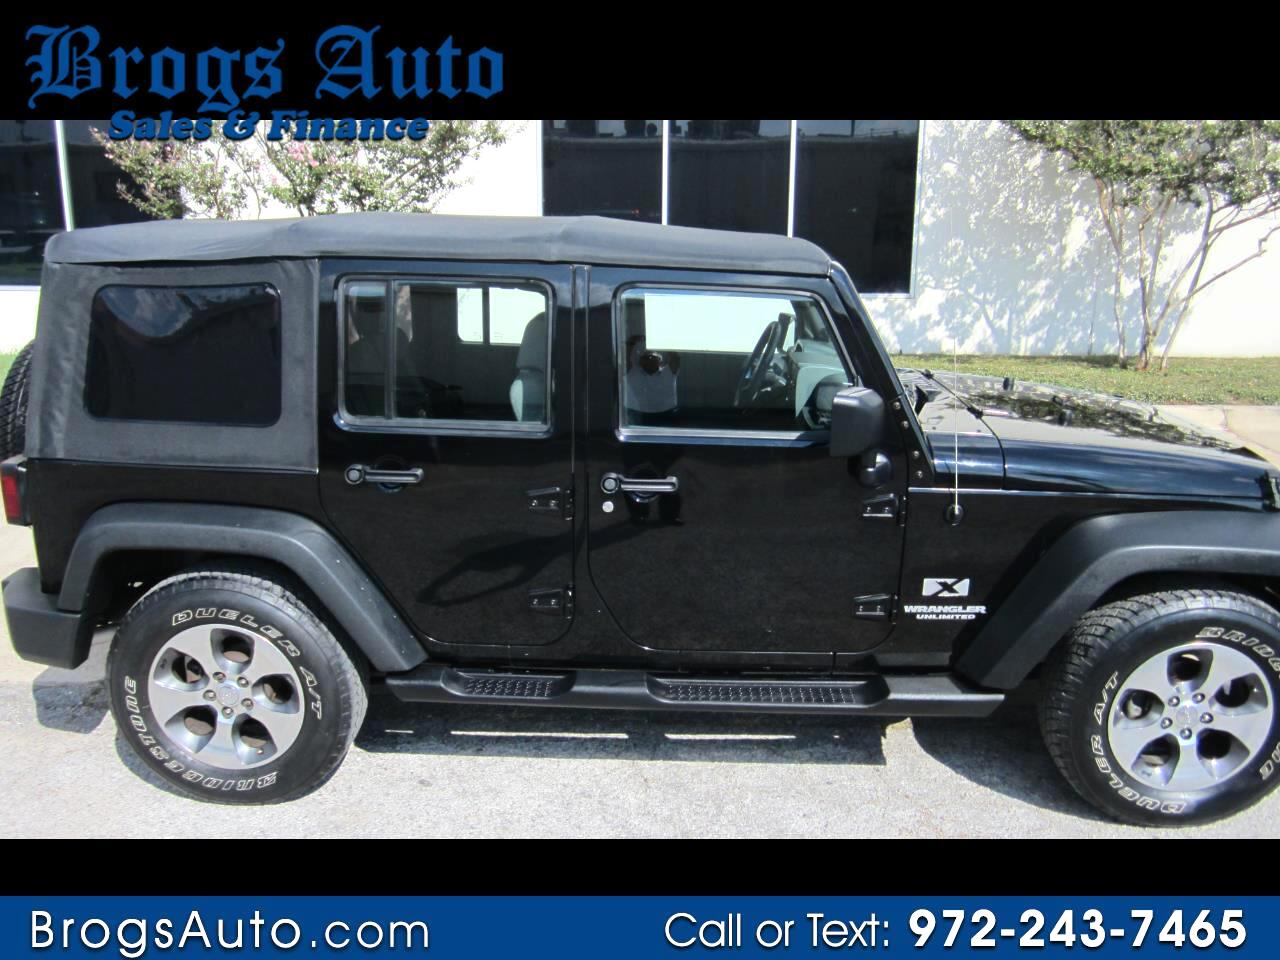 Jeep Wrangler Unlimited RWD 4dr X 2009